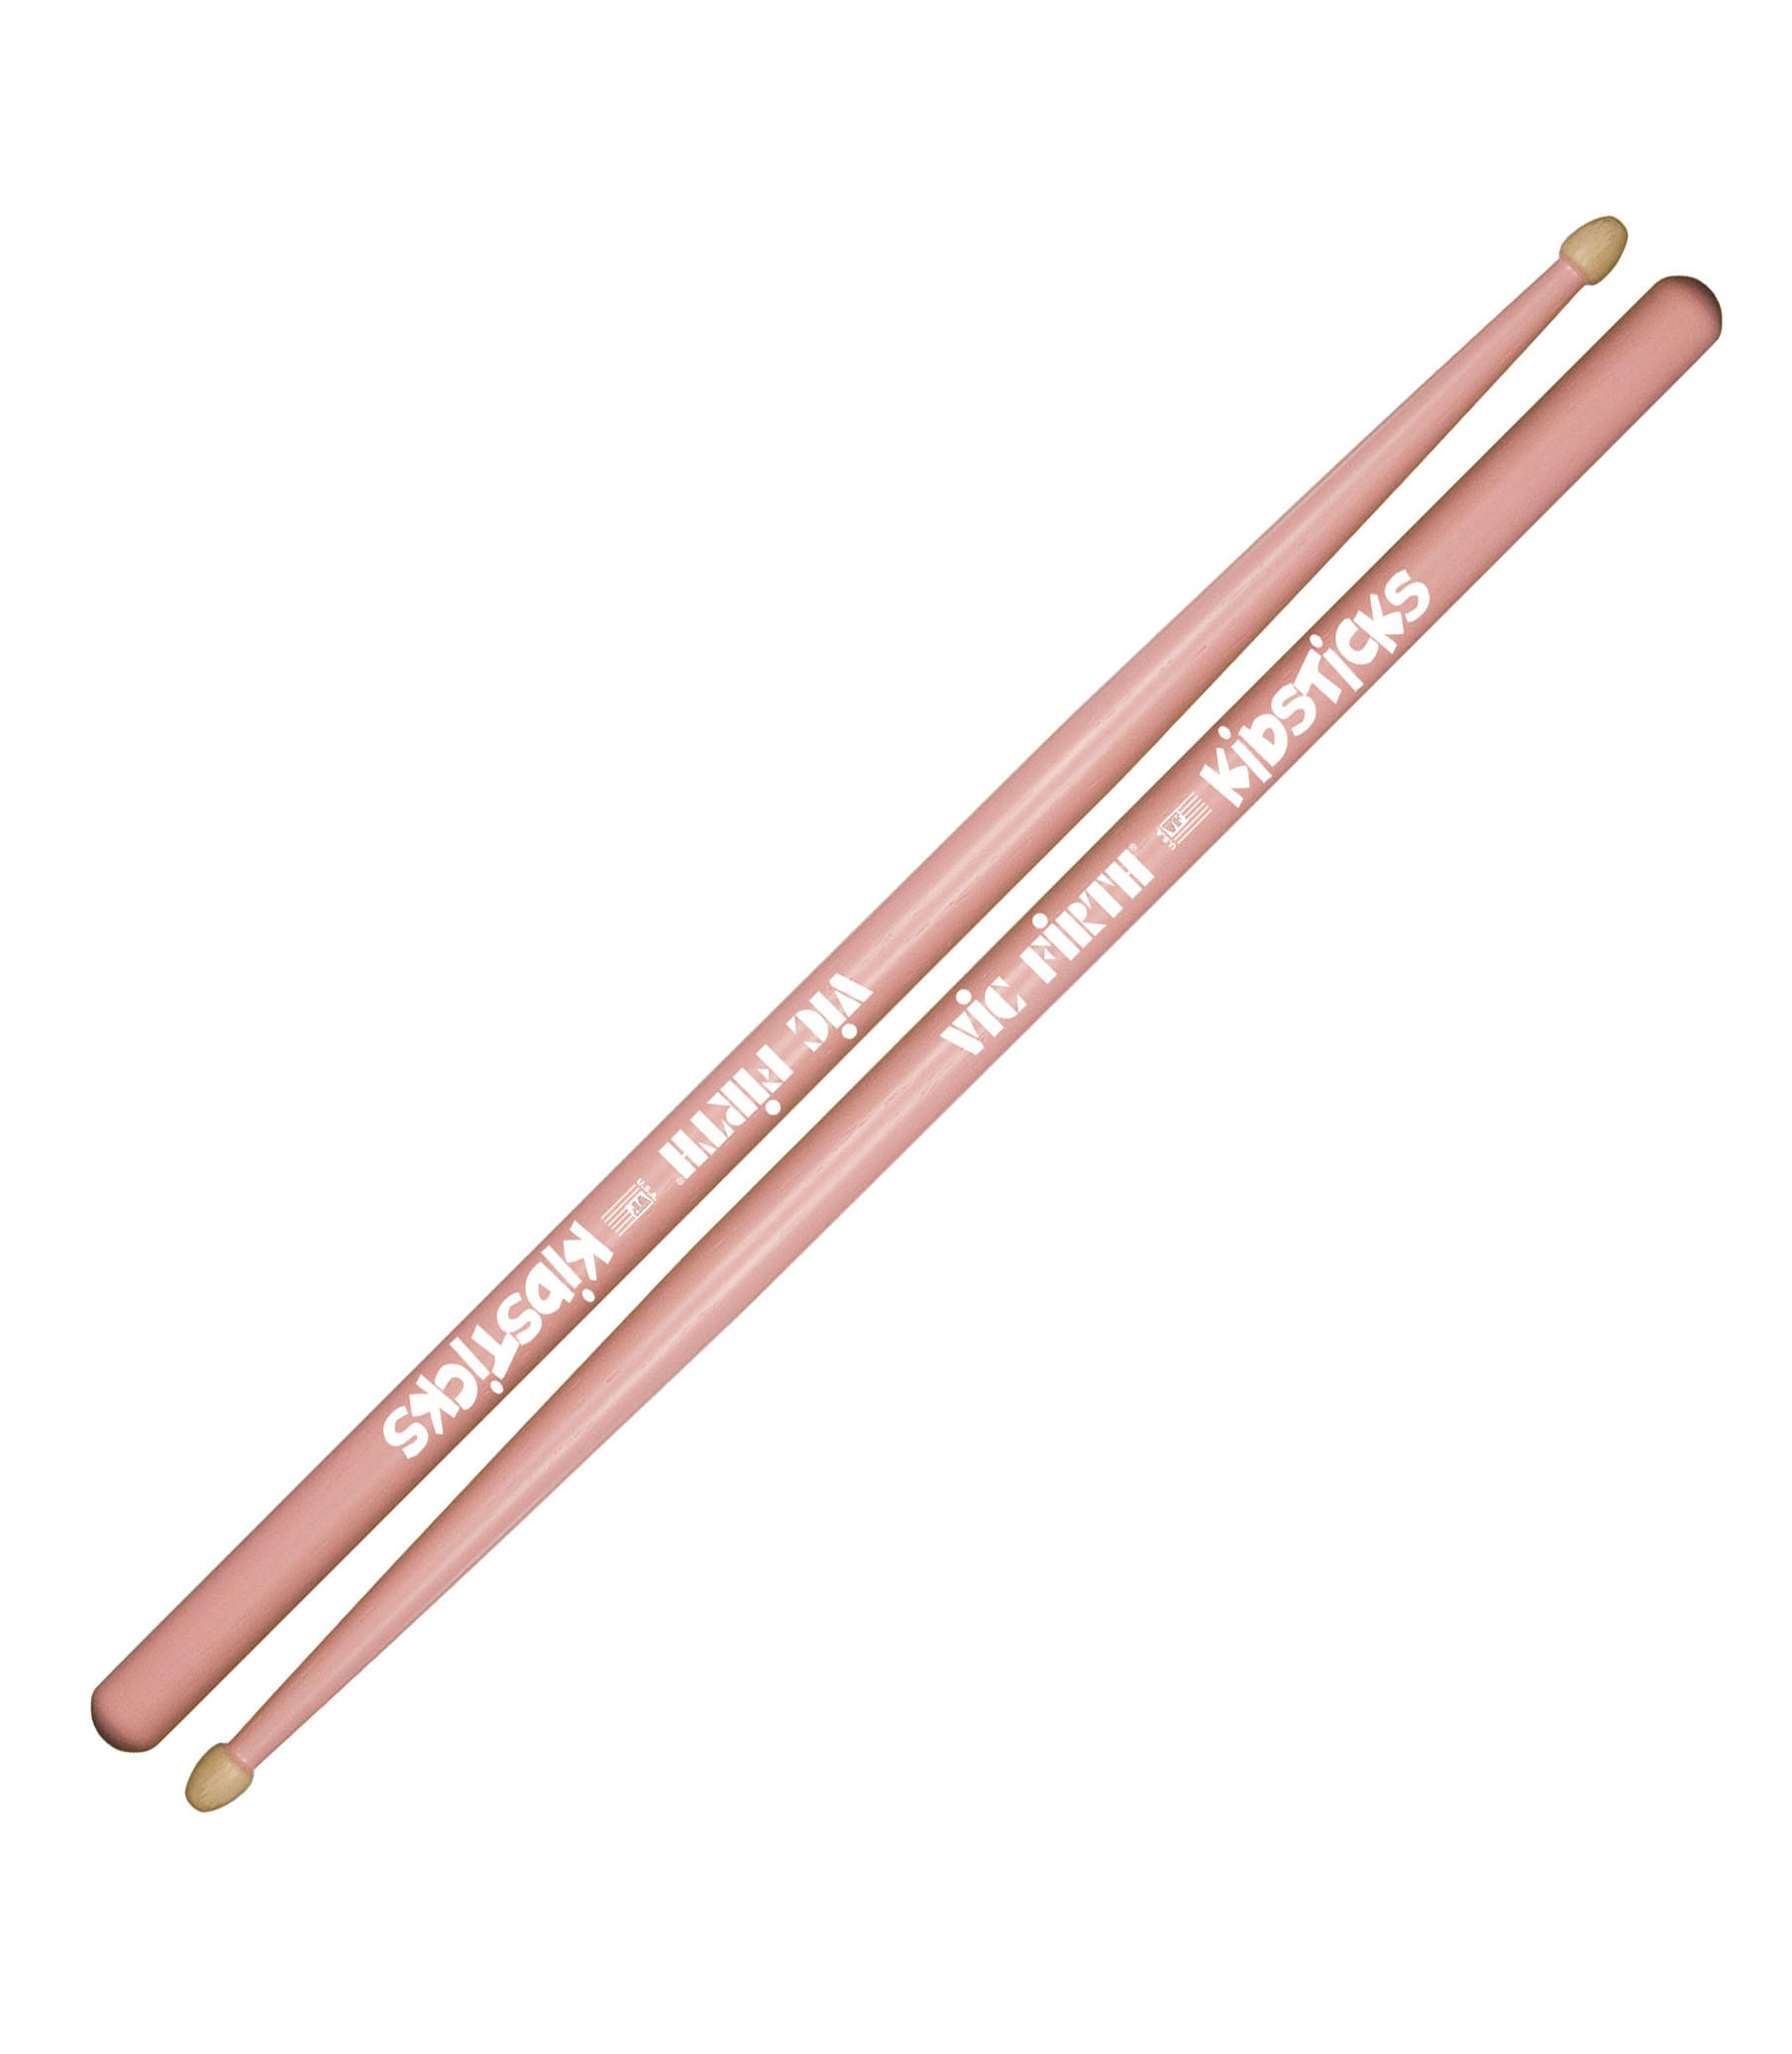 buy vicfirth kids stick pink colour